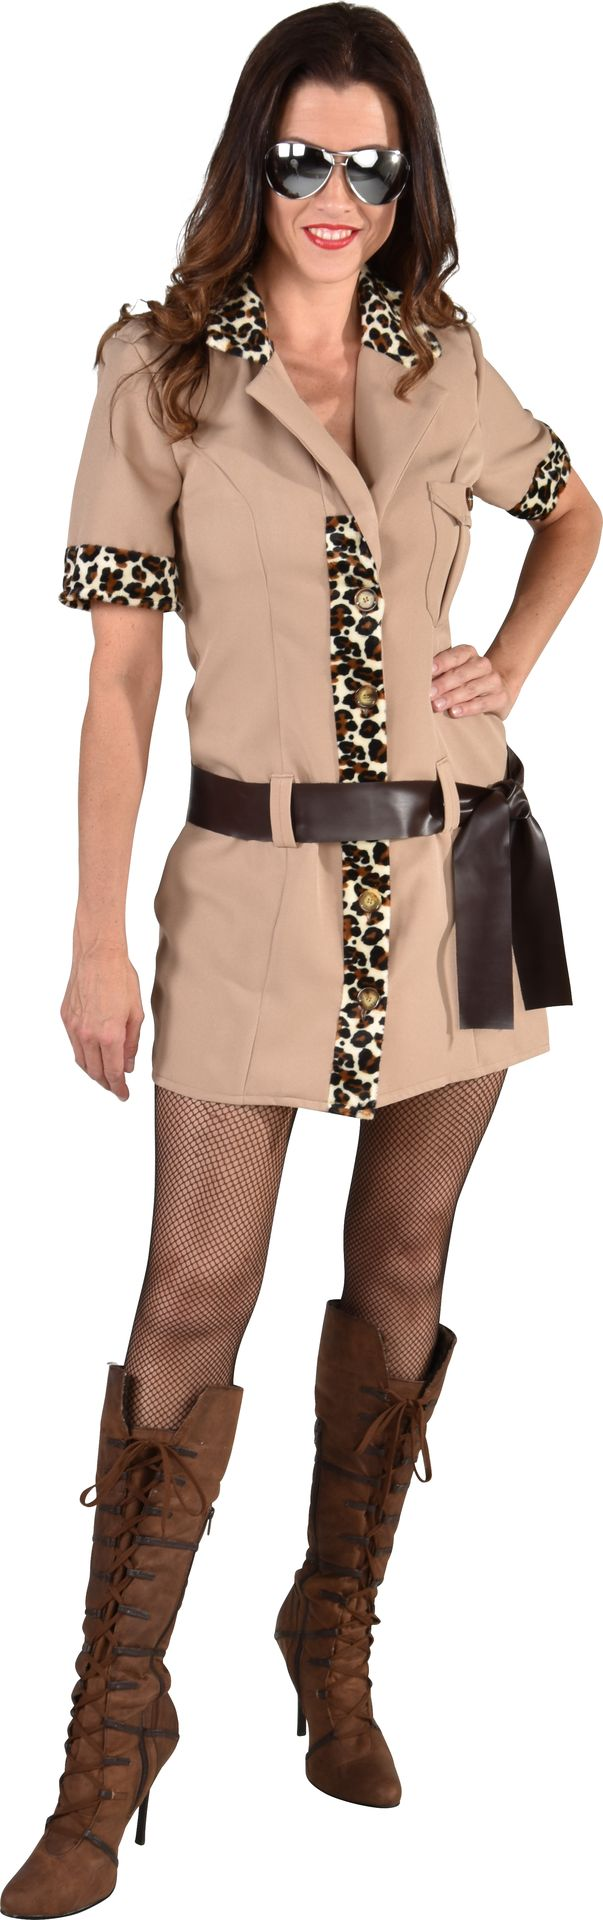 Safari girl jurk dames